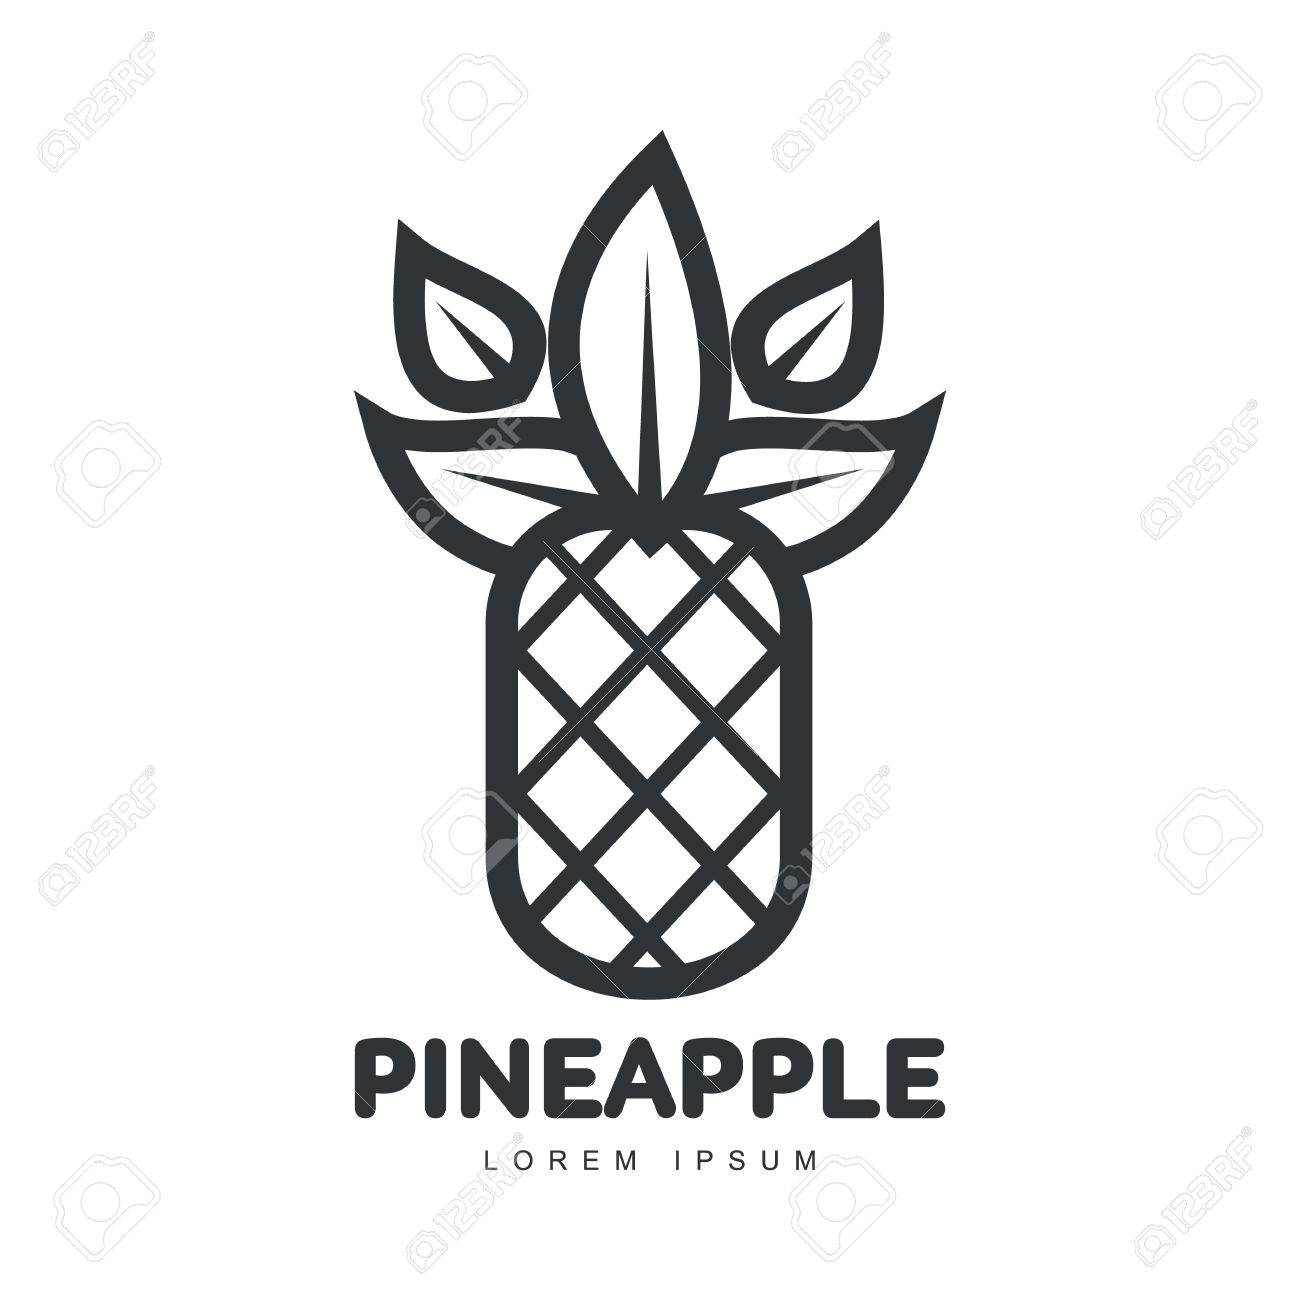 Black And White Symmetric Graphic Pineapple Logo Template, Vector ... for Clipart Pineapple Black And White  45ifm